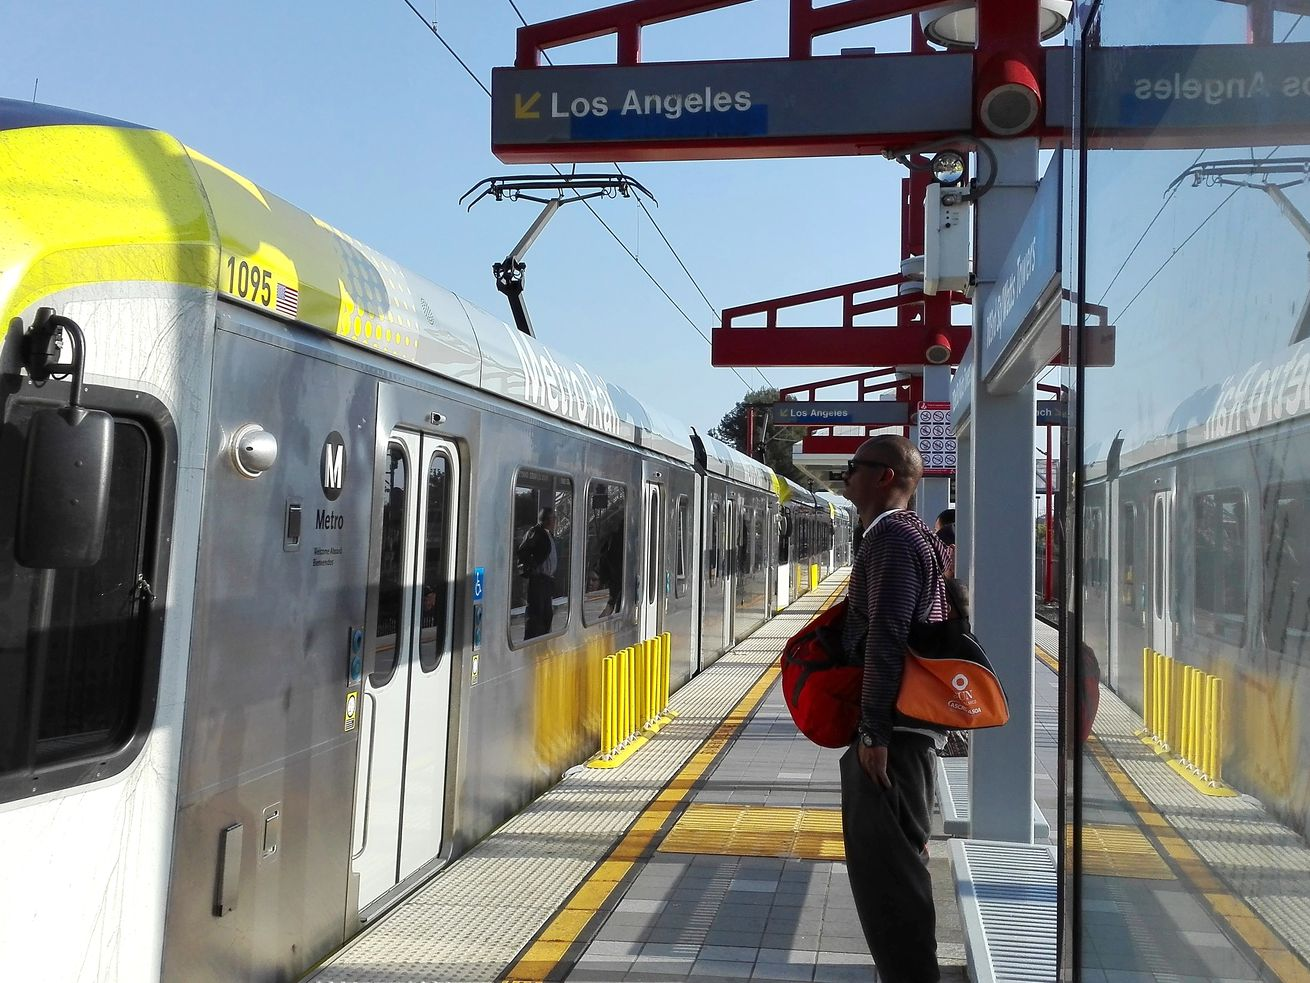 Riders can take Metro trains and buses free of charge on election day.